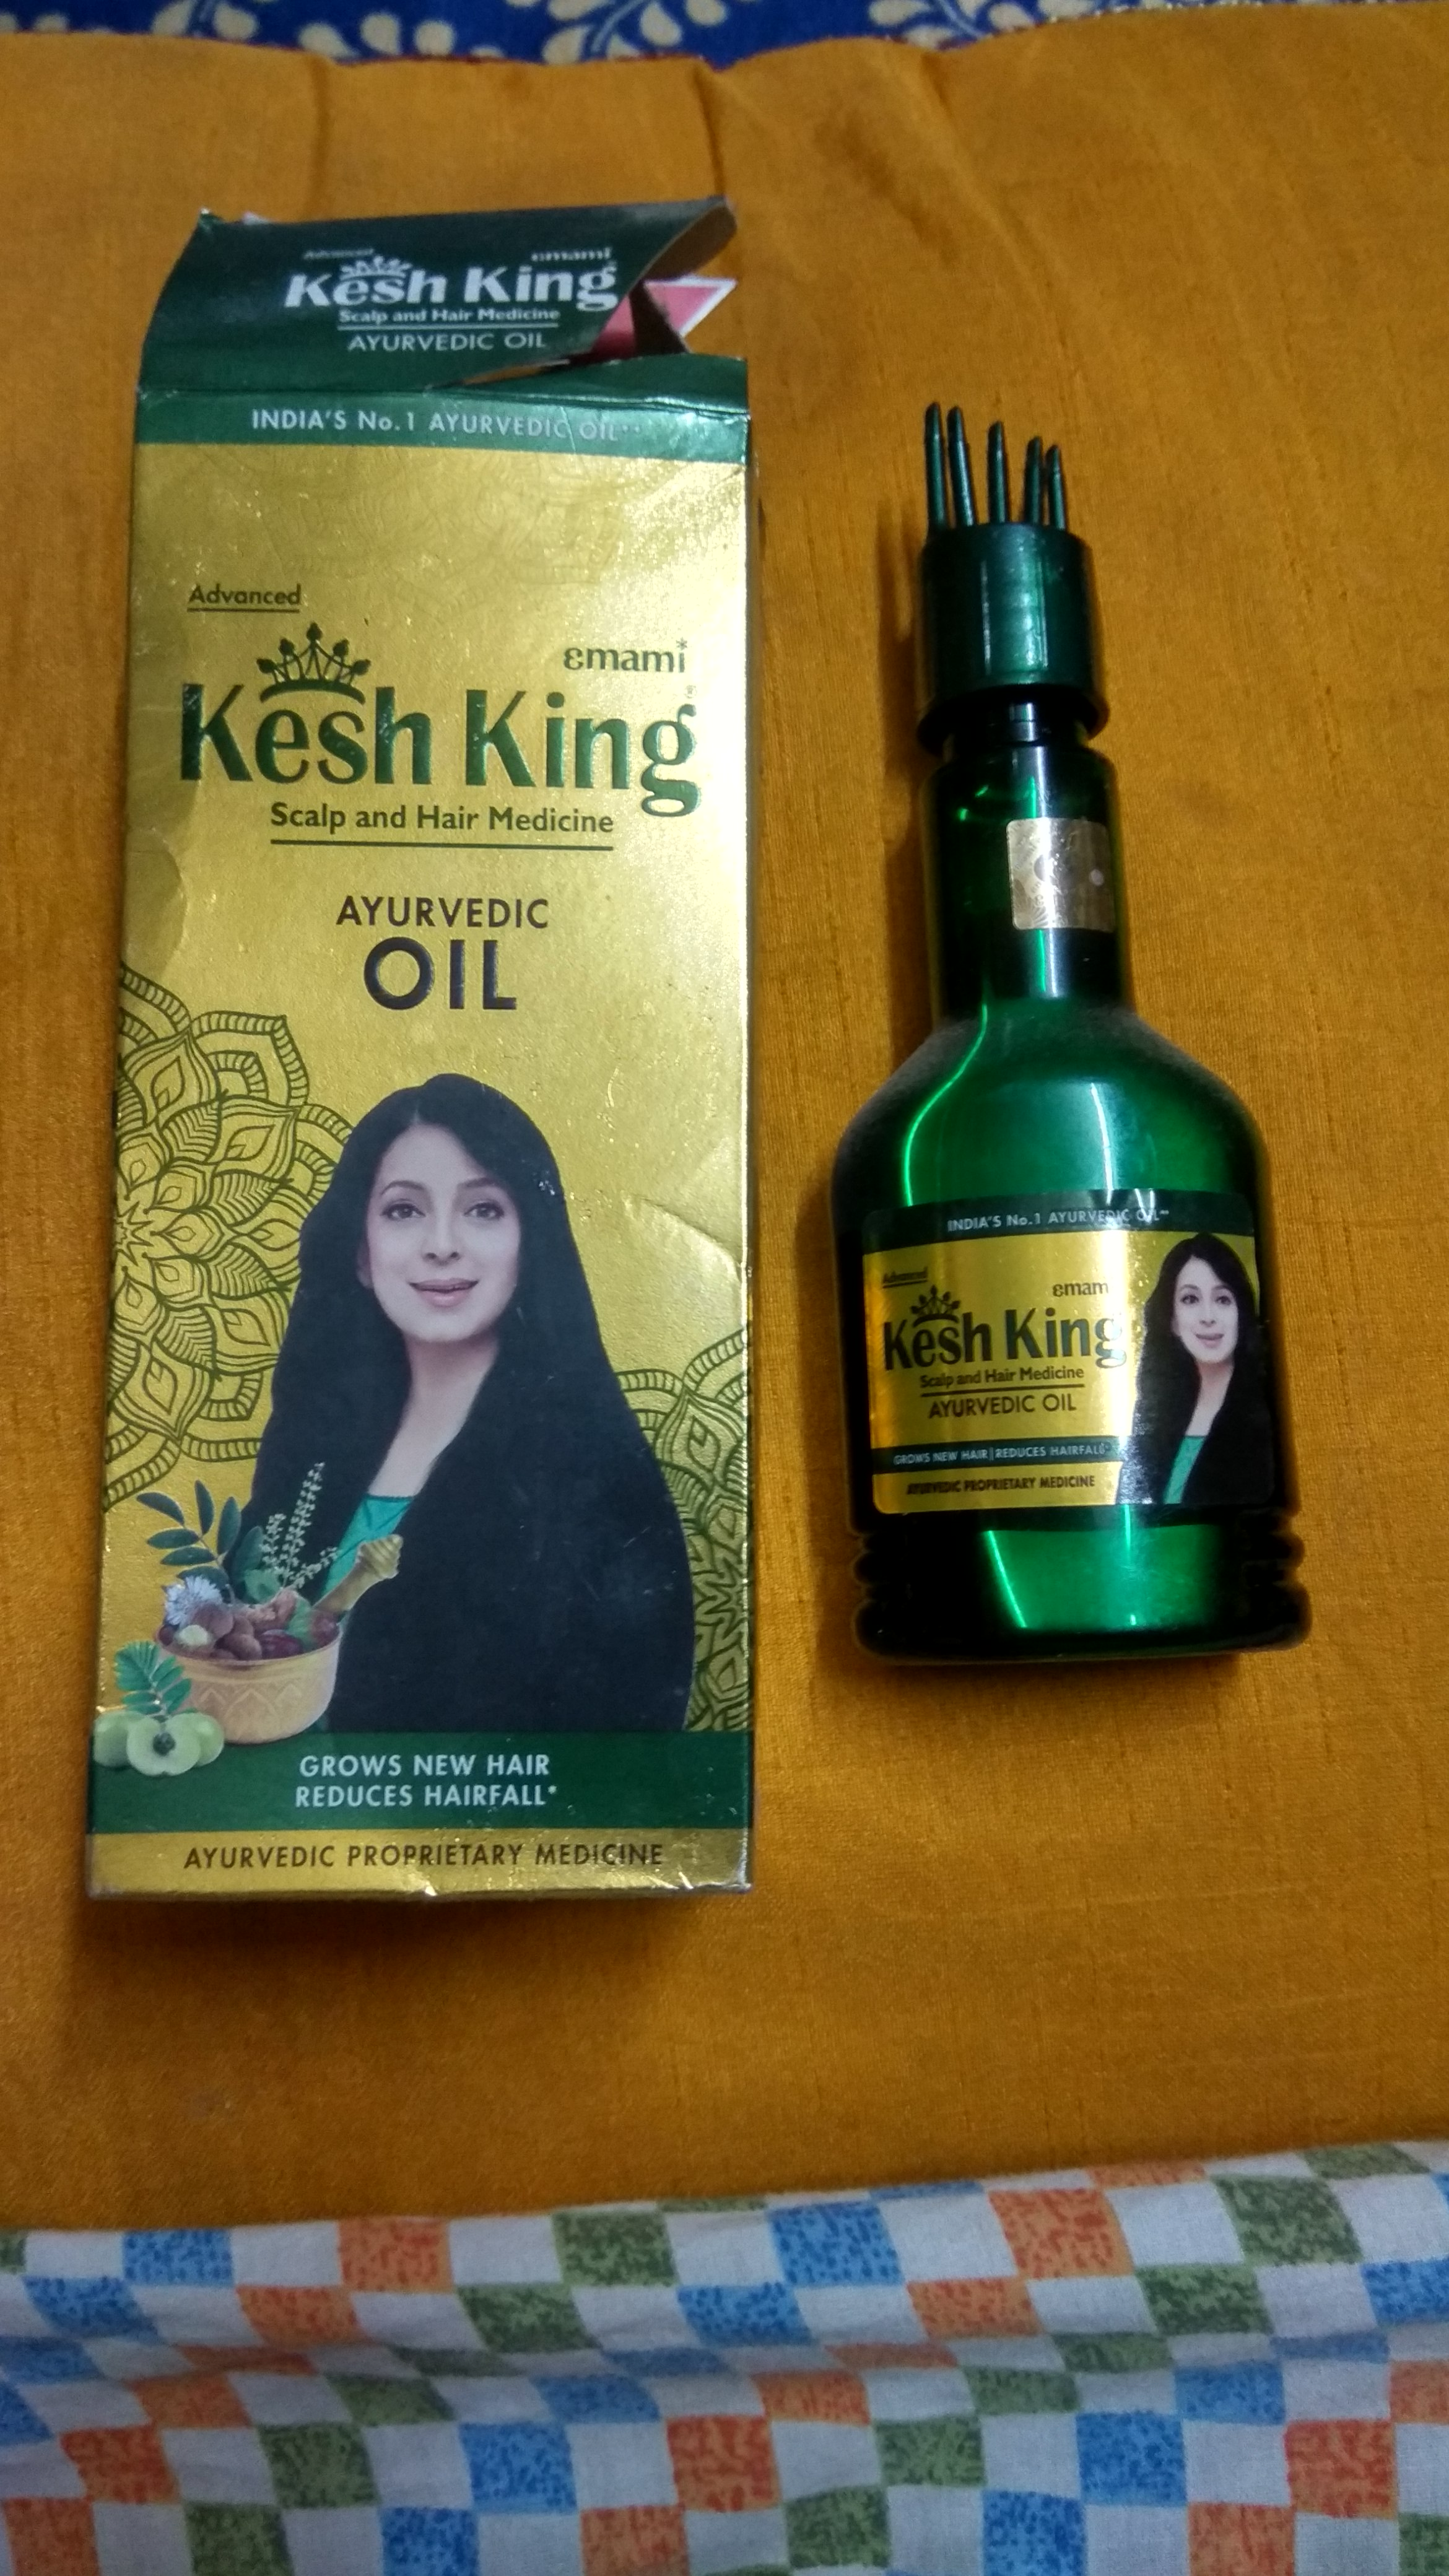 Kesh King Scalp And Hair Medicine Ayurvedic Oil-Kesh King Hair Oil-By thestylishvibe